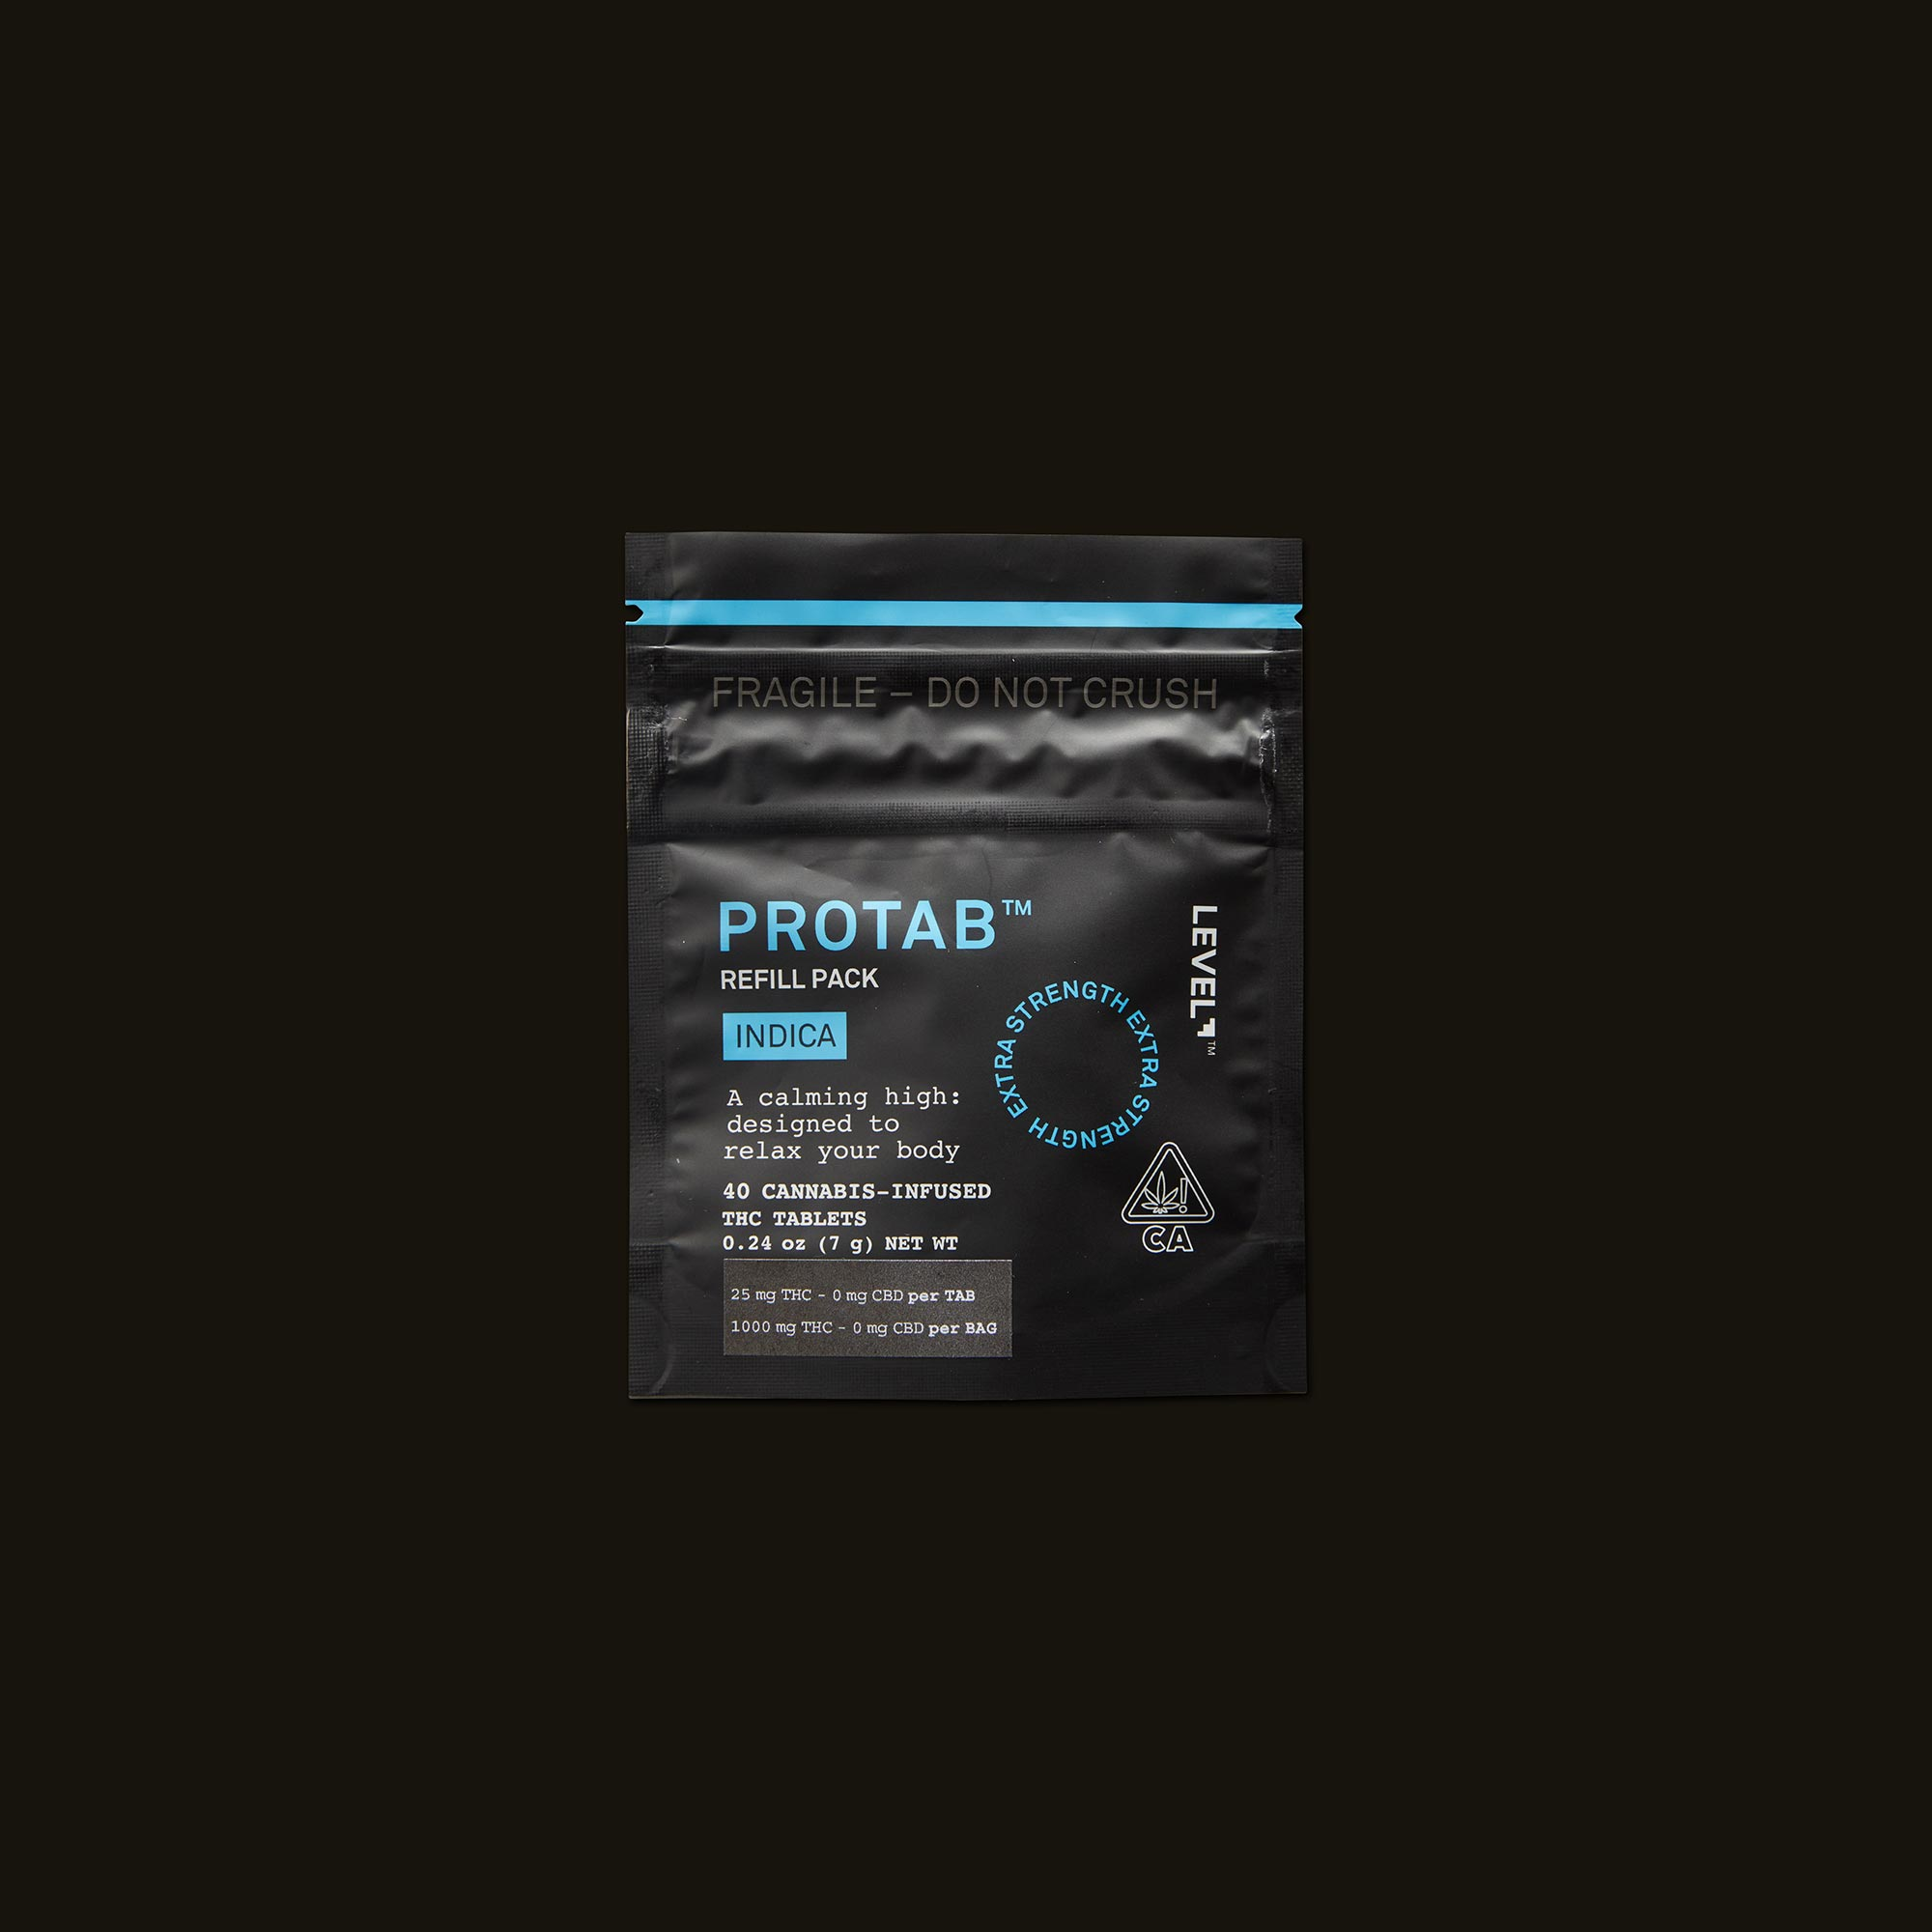 LEVEL Indica Protab Refill Pack Front